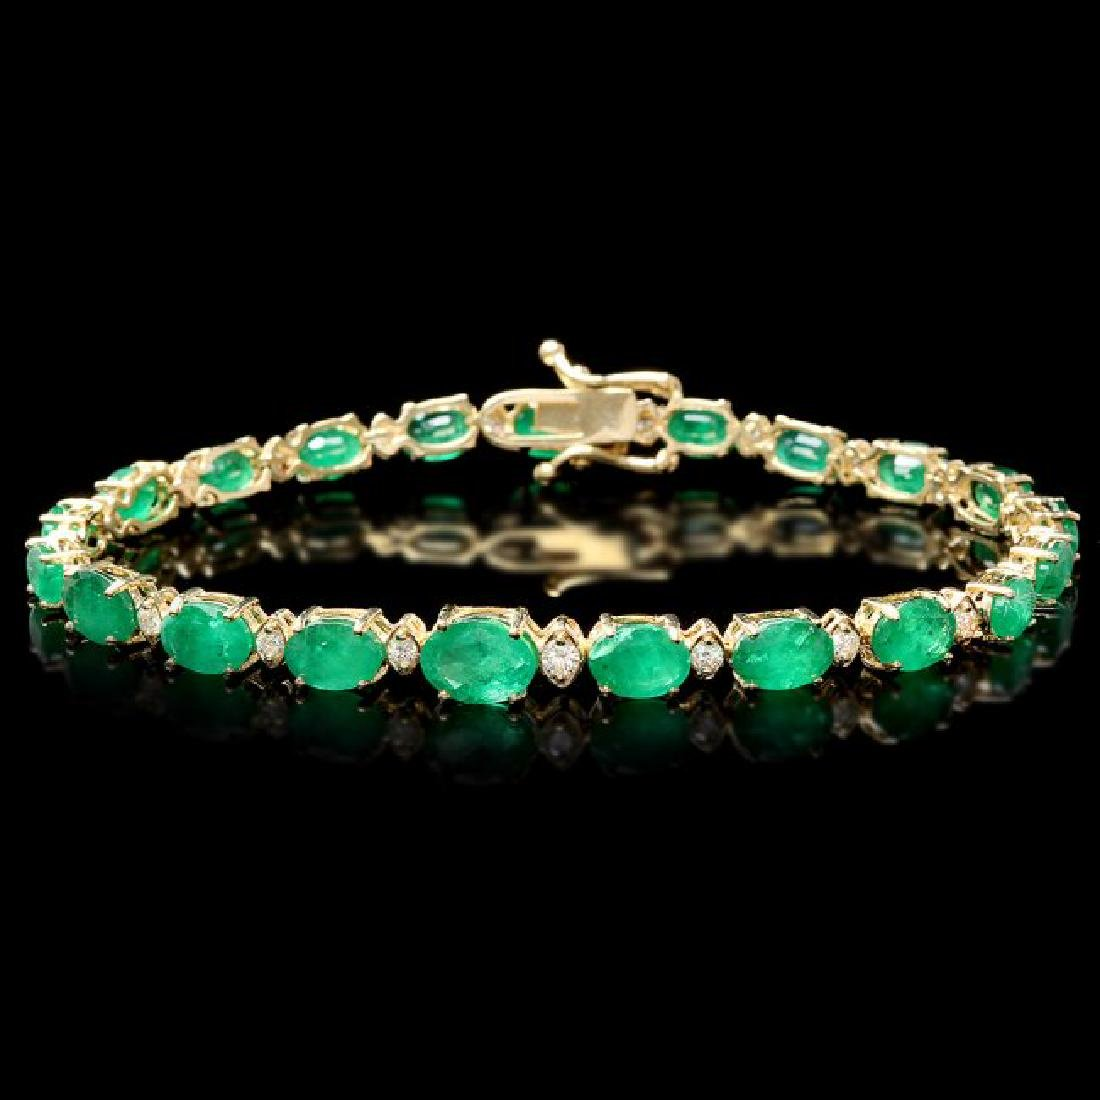 14k Gold 11ct Emerald .60ct Diamond Bracelet